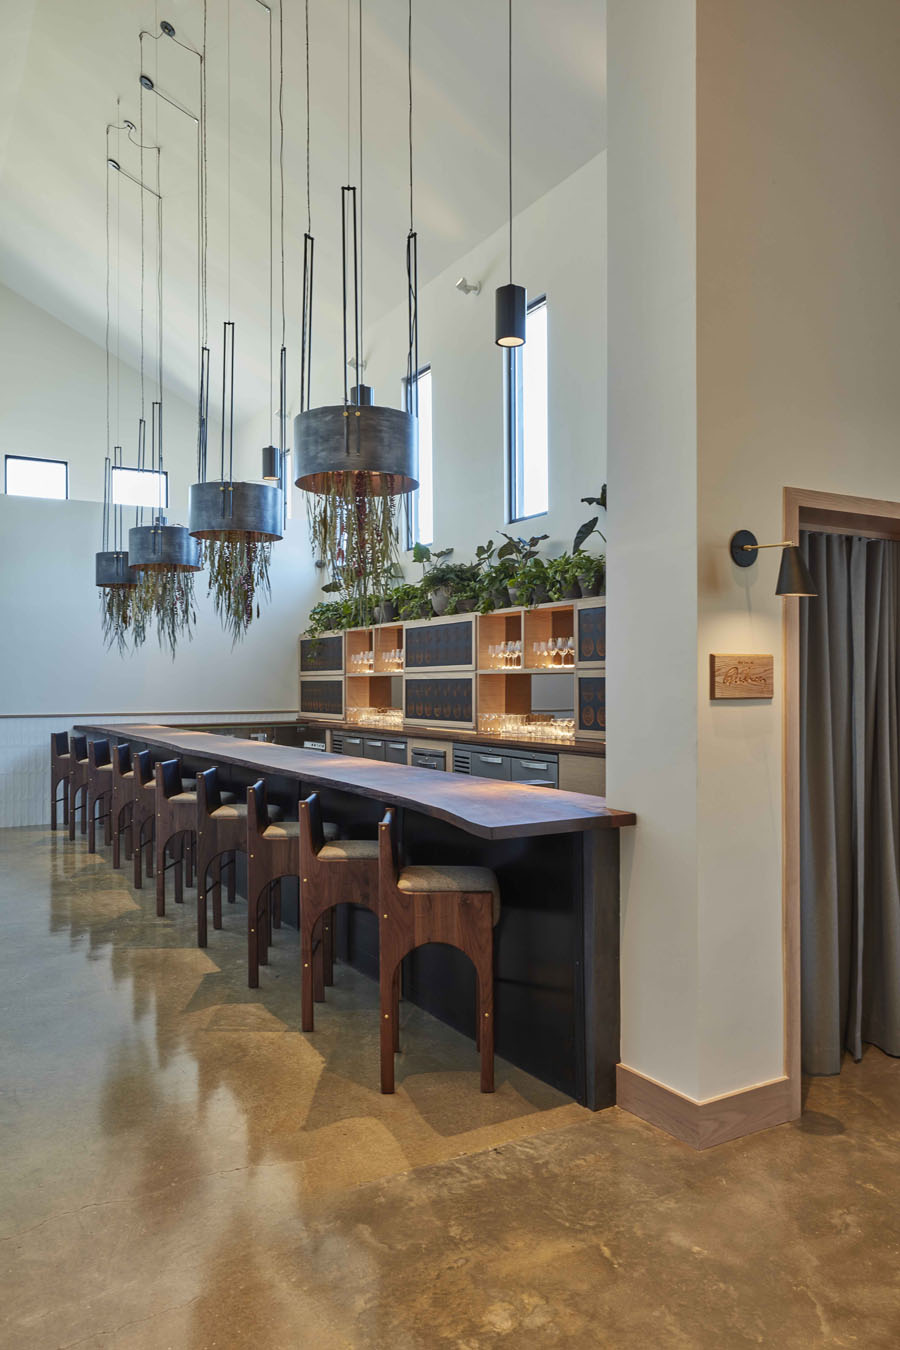 interior of restaurant showing bar seating and hanging herbs and lighting